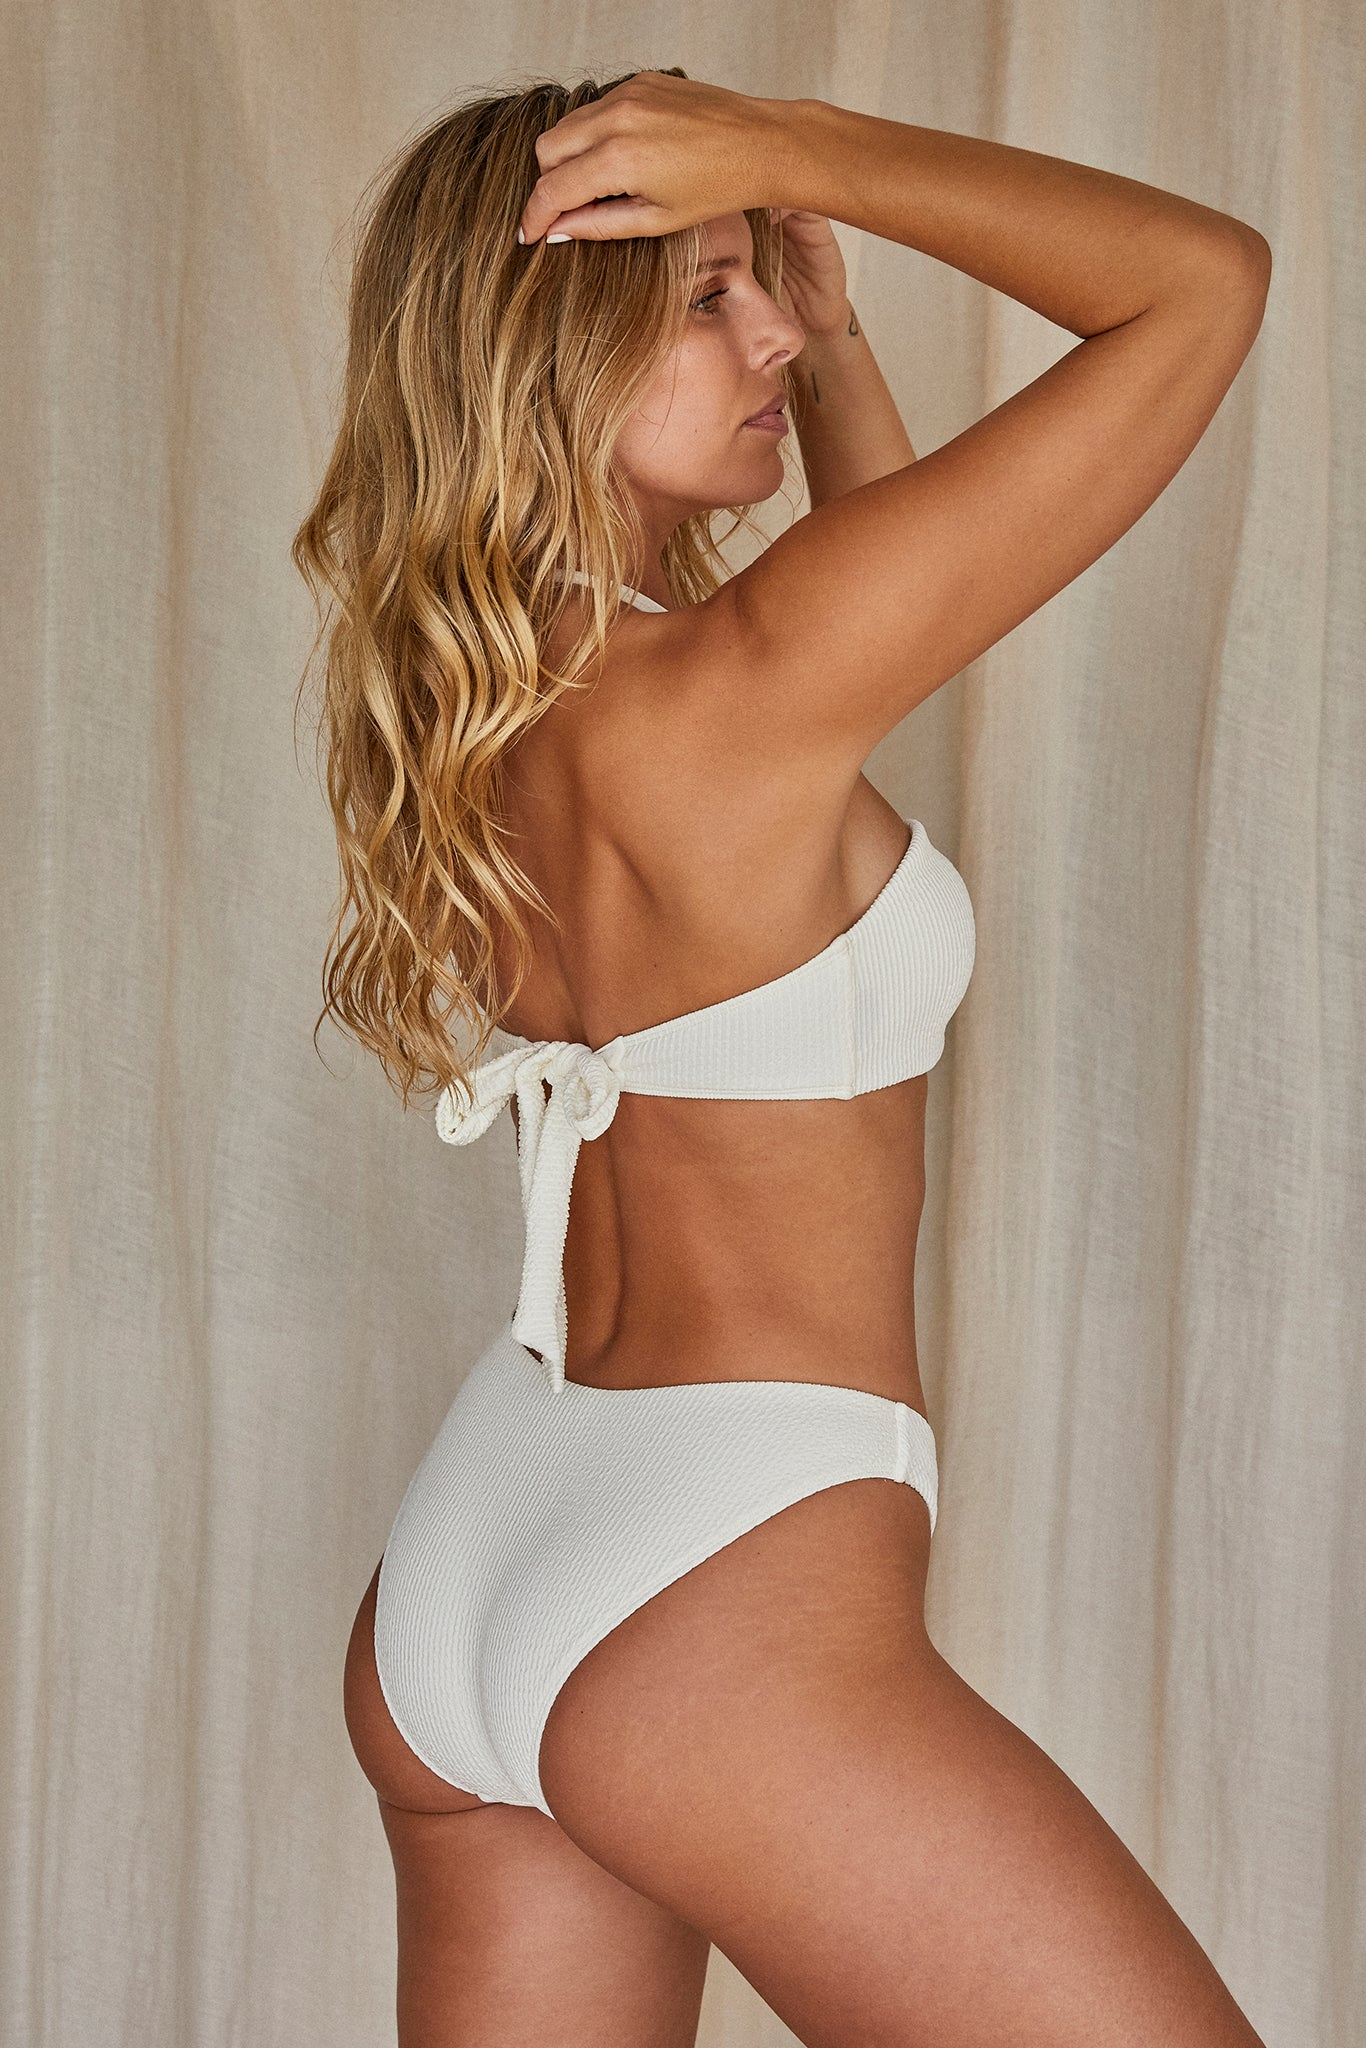 Load image into Gallery viewer, Copacabana Top - Ivory Crinkle